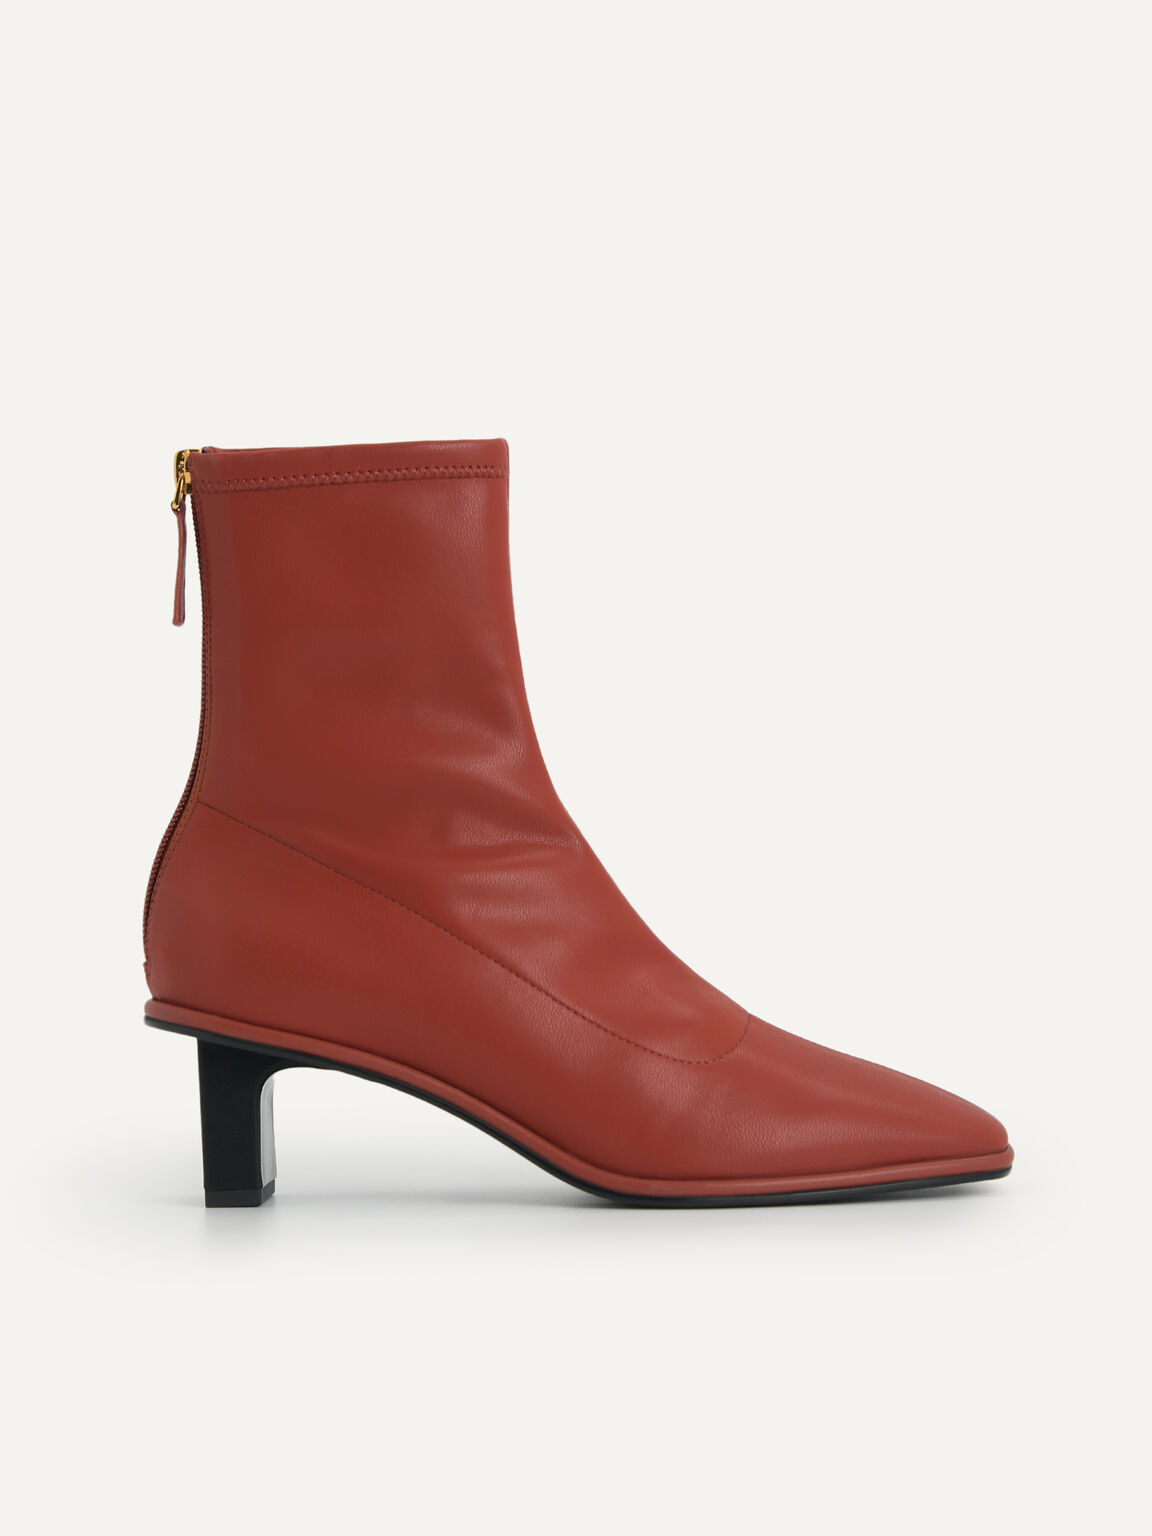 Heeled Ankle Boots, Brick, hi-res